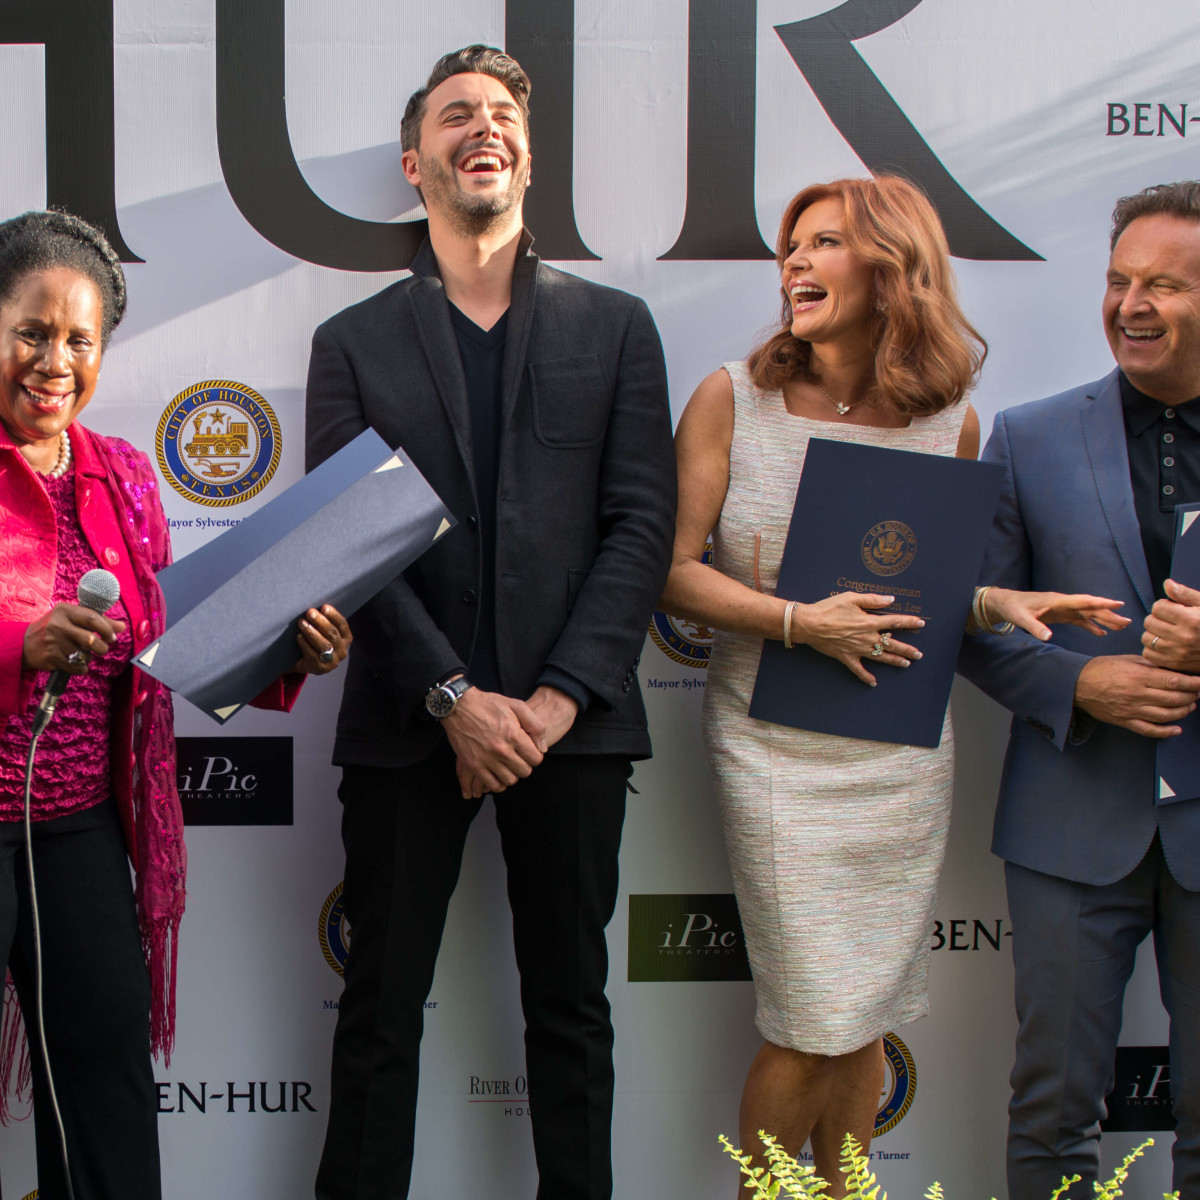 Ben-Hur premiere, Aug. 2016, Sheila Jackson Lee, Jack Huston, Roma Downey, Mark Burnett